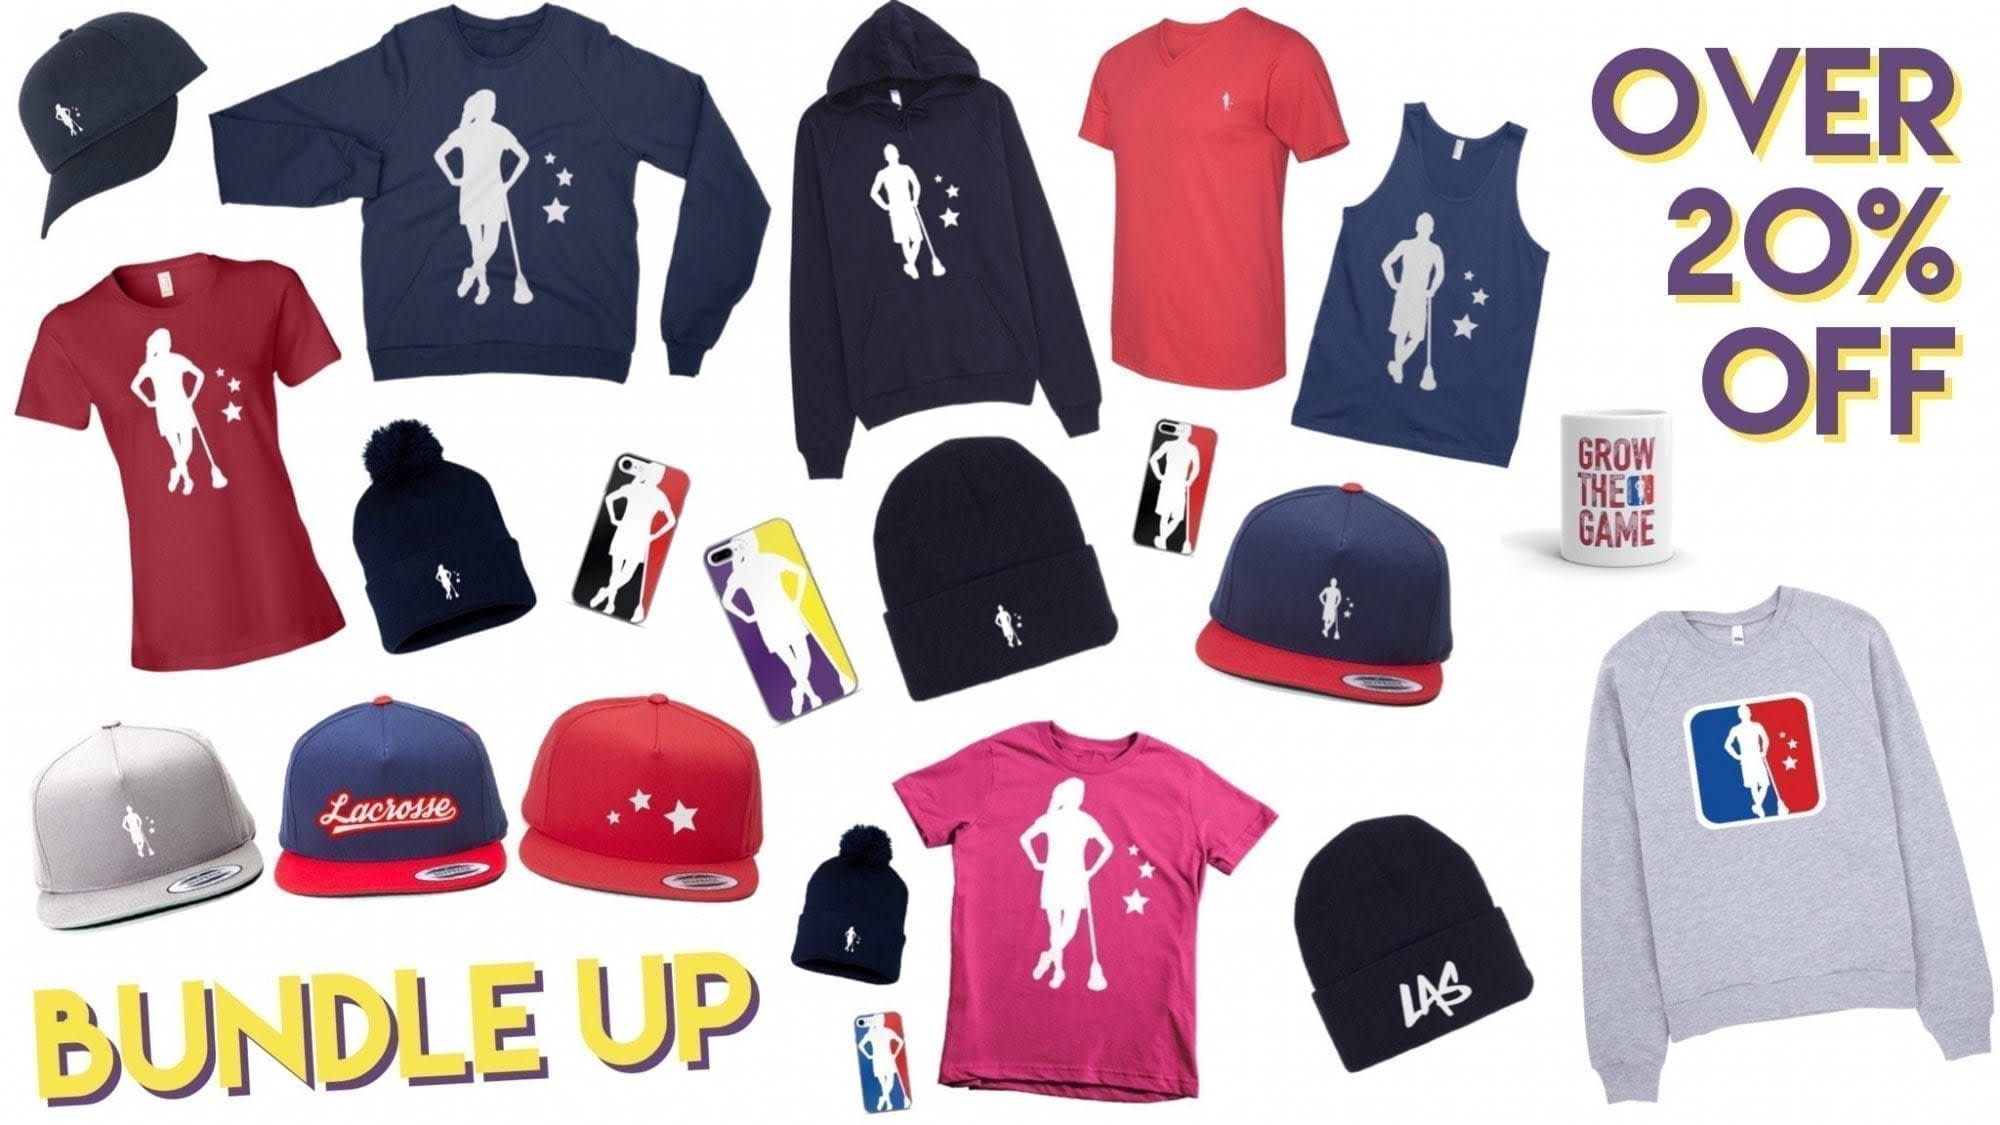 Bundle up and save over 20% off